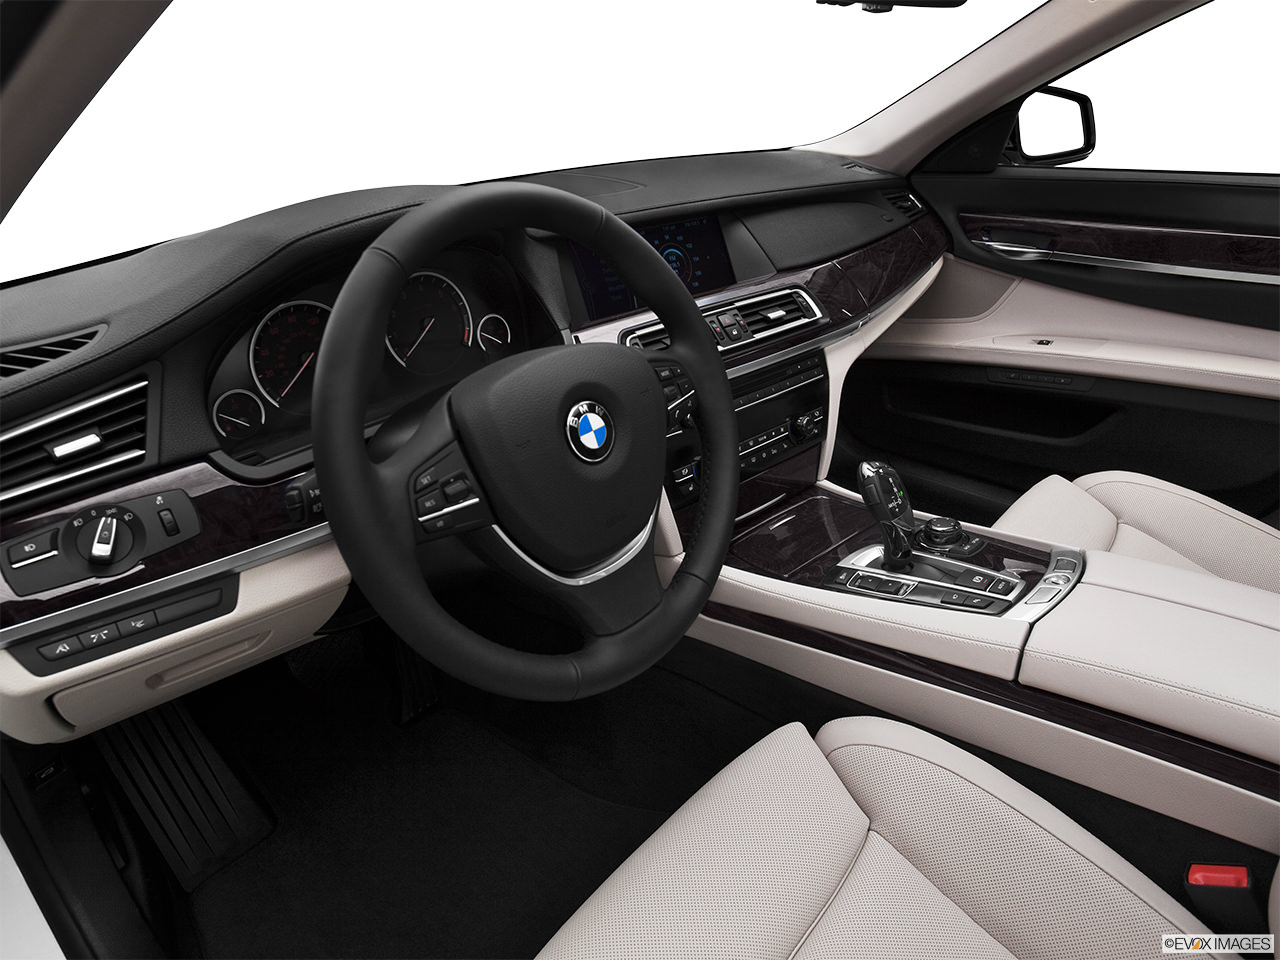 BMW ActiveHybrid 7 2012 Interior